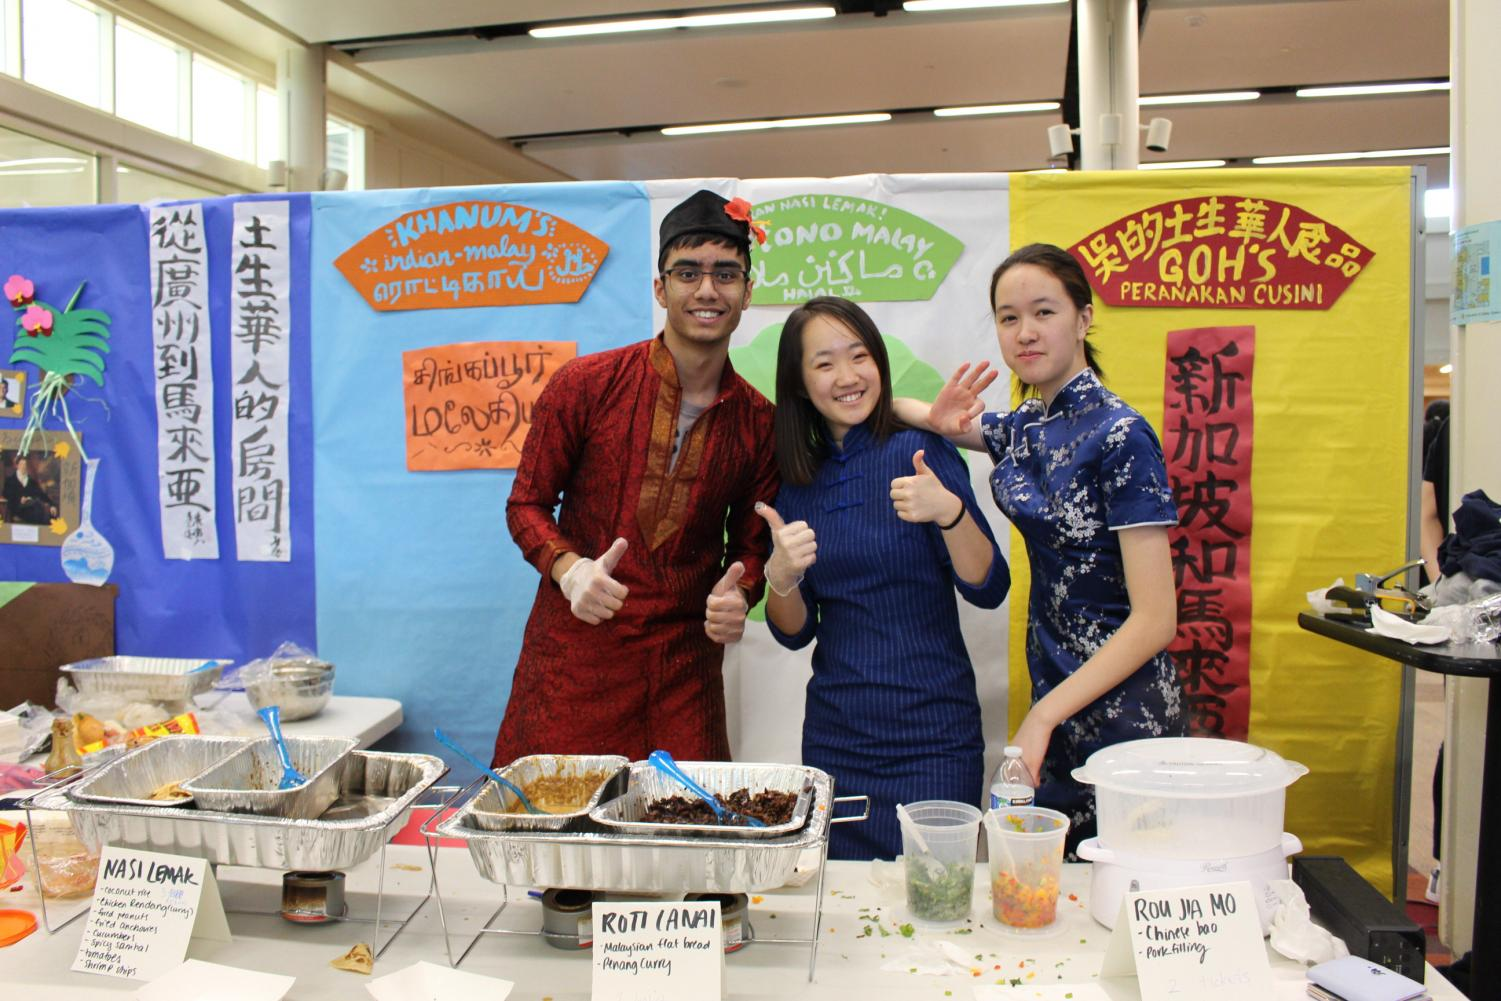 Shisir Bandapalli '21, Diane Bi '21, and Clare Hu '21 all helped out at the Malaysian booth.  They were all eager to share Malaysian cuisine: Nasi lemak, roti lani, and rou jia mo.